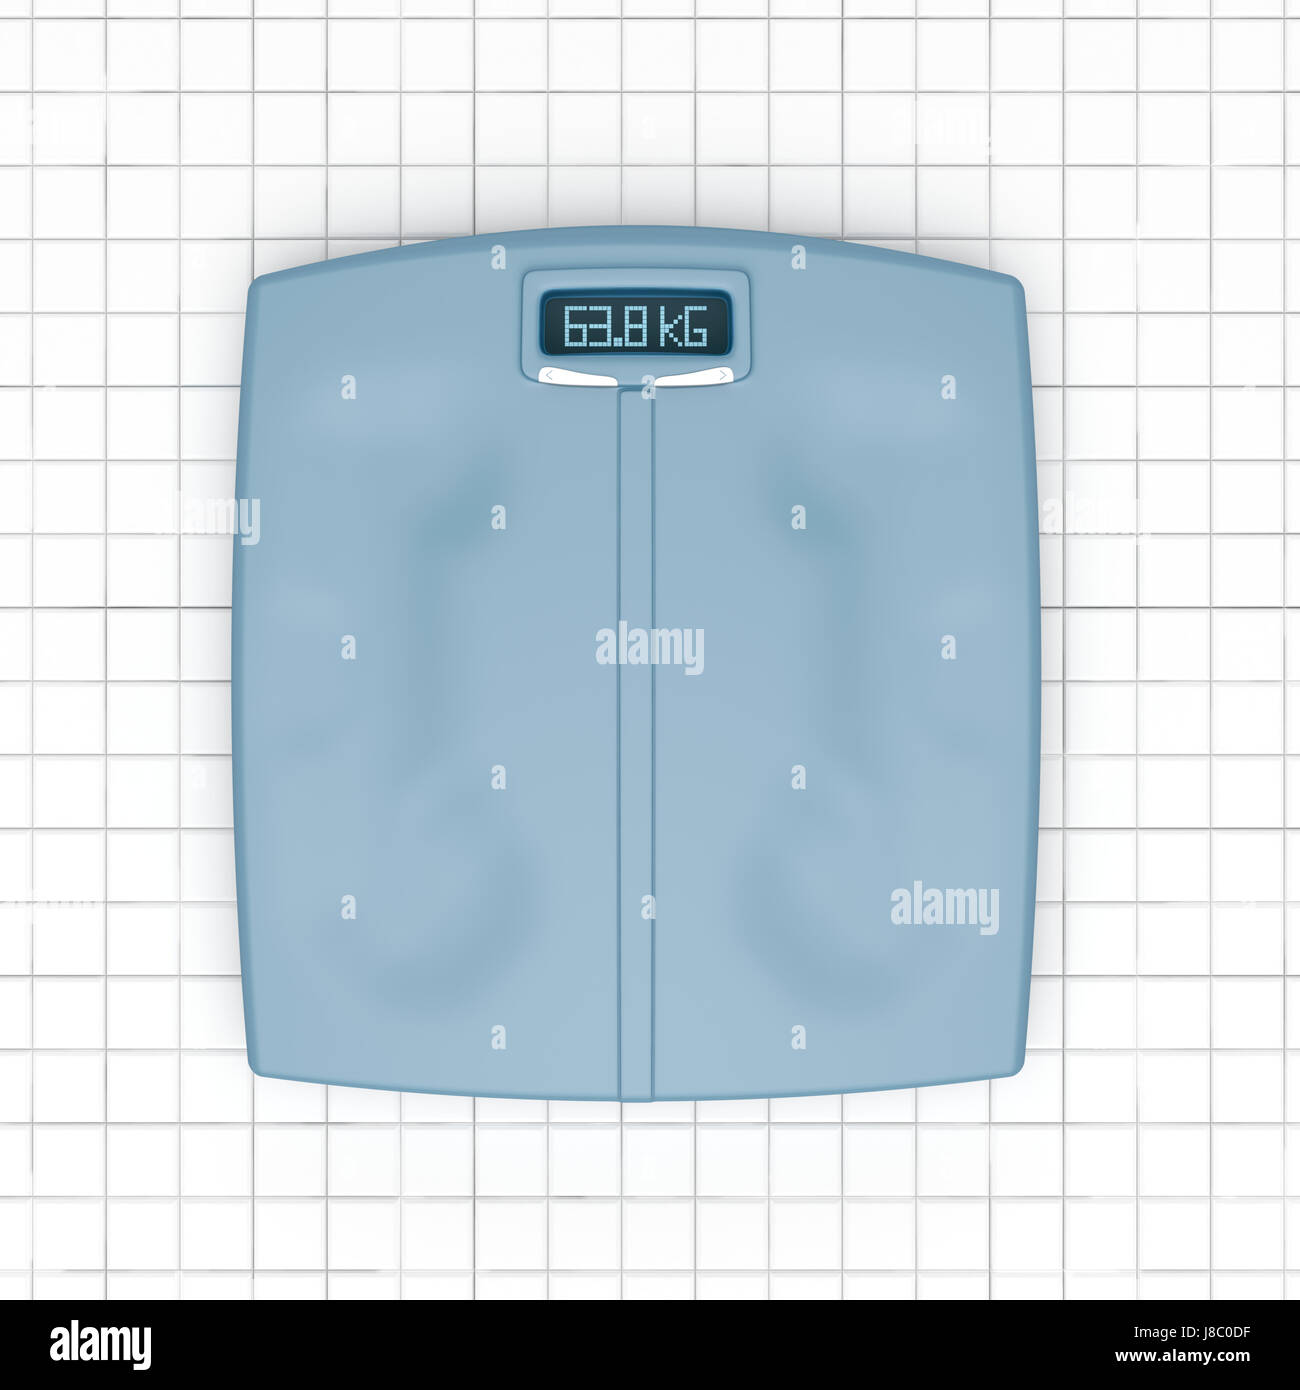 diet, mass, weight, overweight, kilogram, scale, obese, object, household, - Stock Image